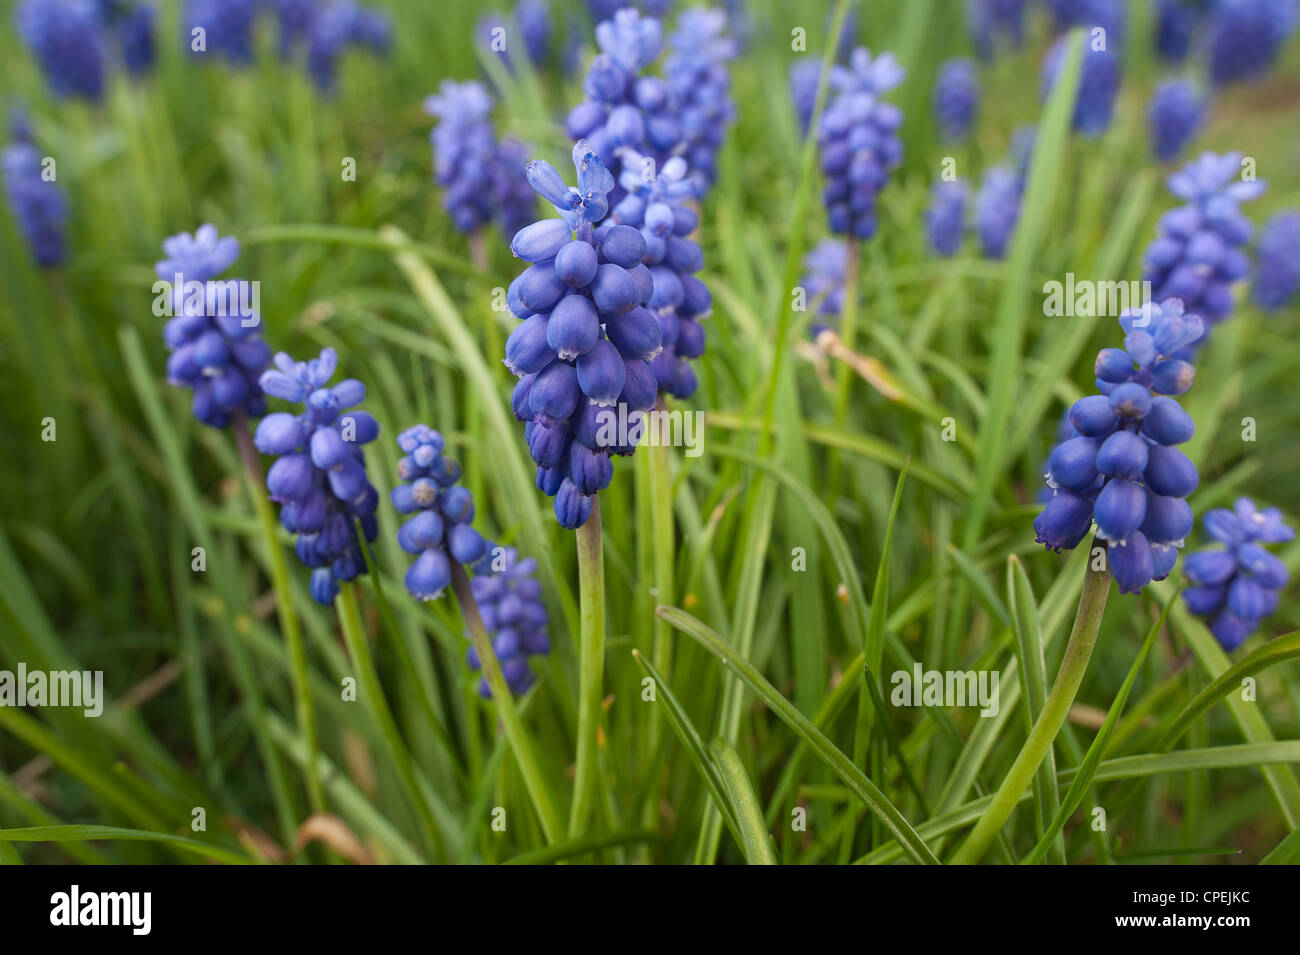 Small grape hyacinth flowering in Spring common grape hyacinth Muscari botryoides amongst germinating grass Stock Photo